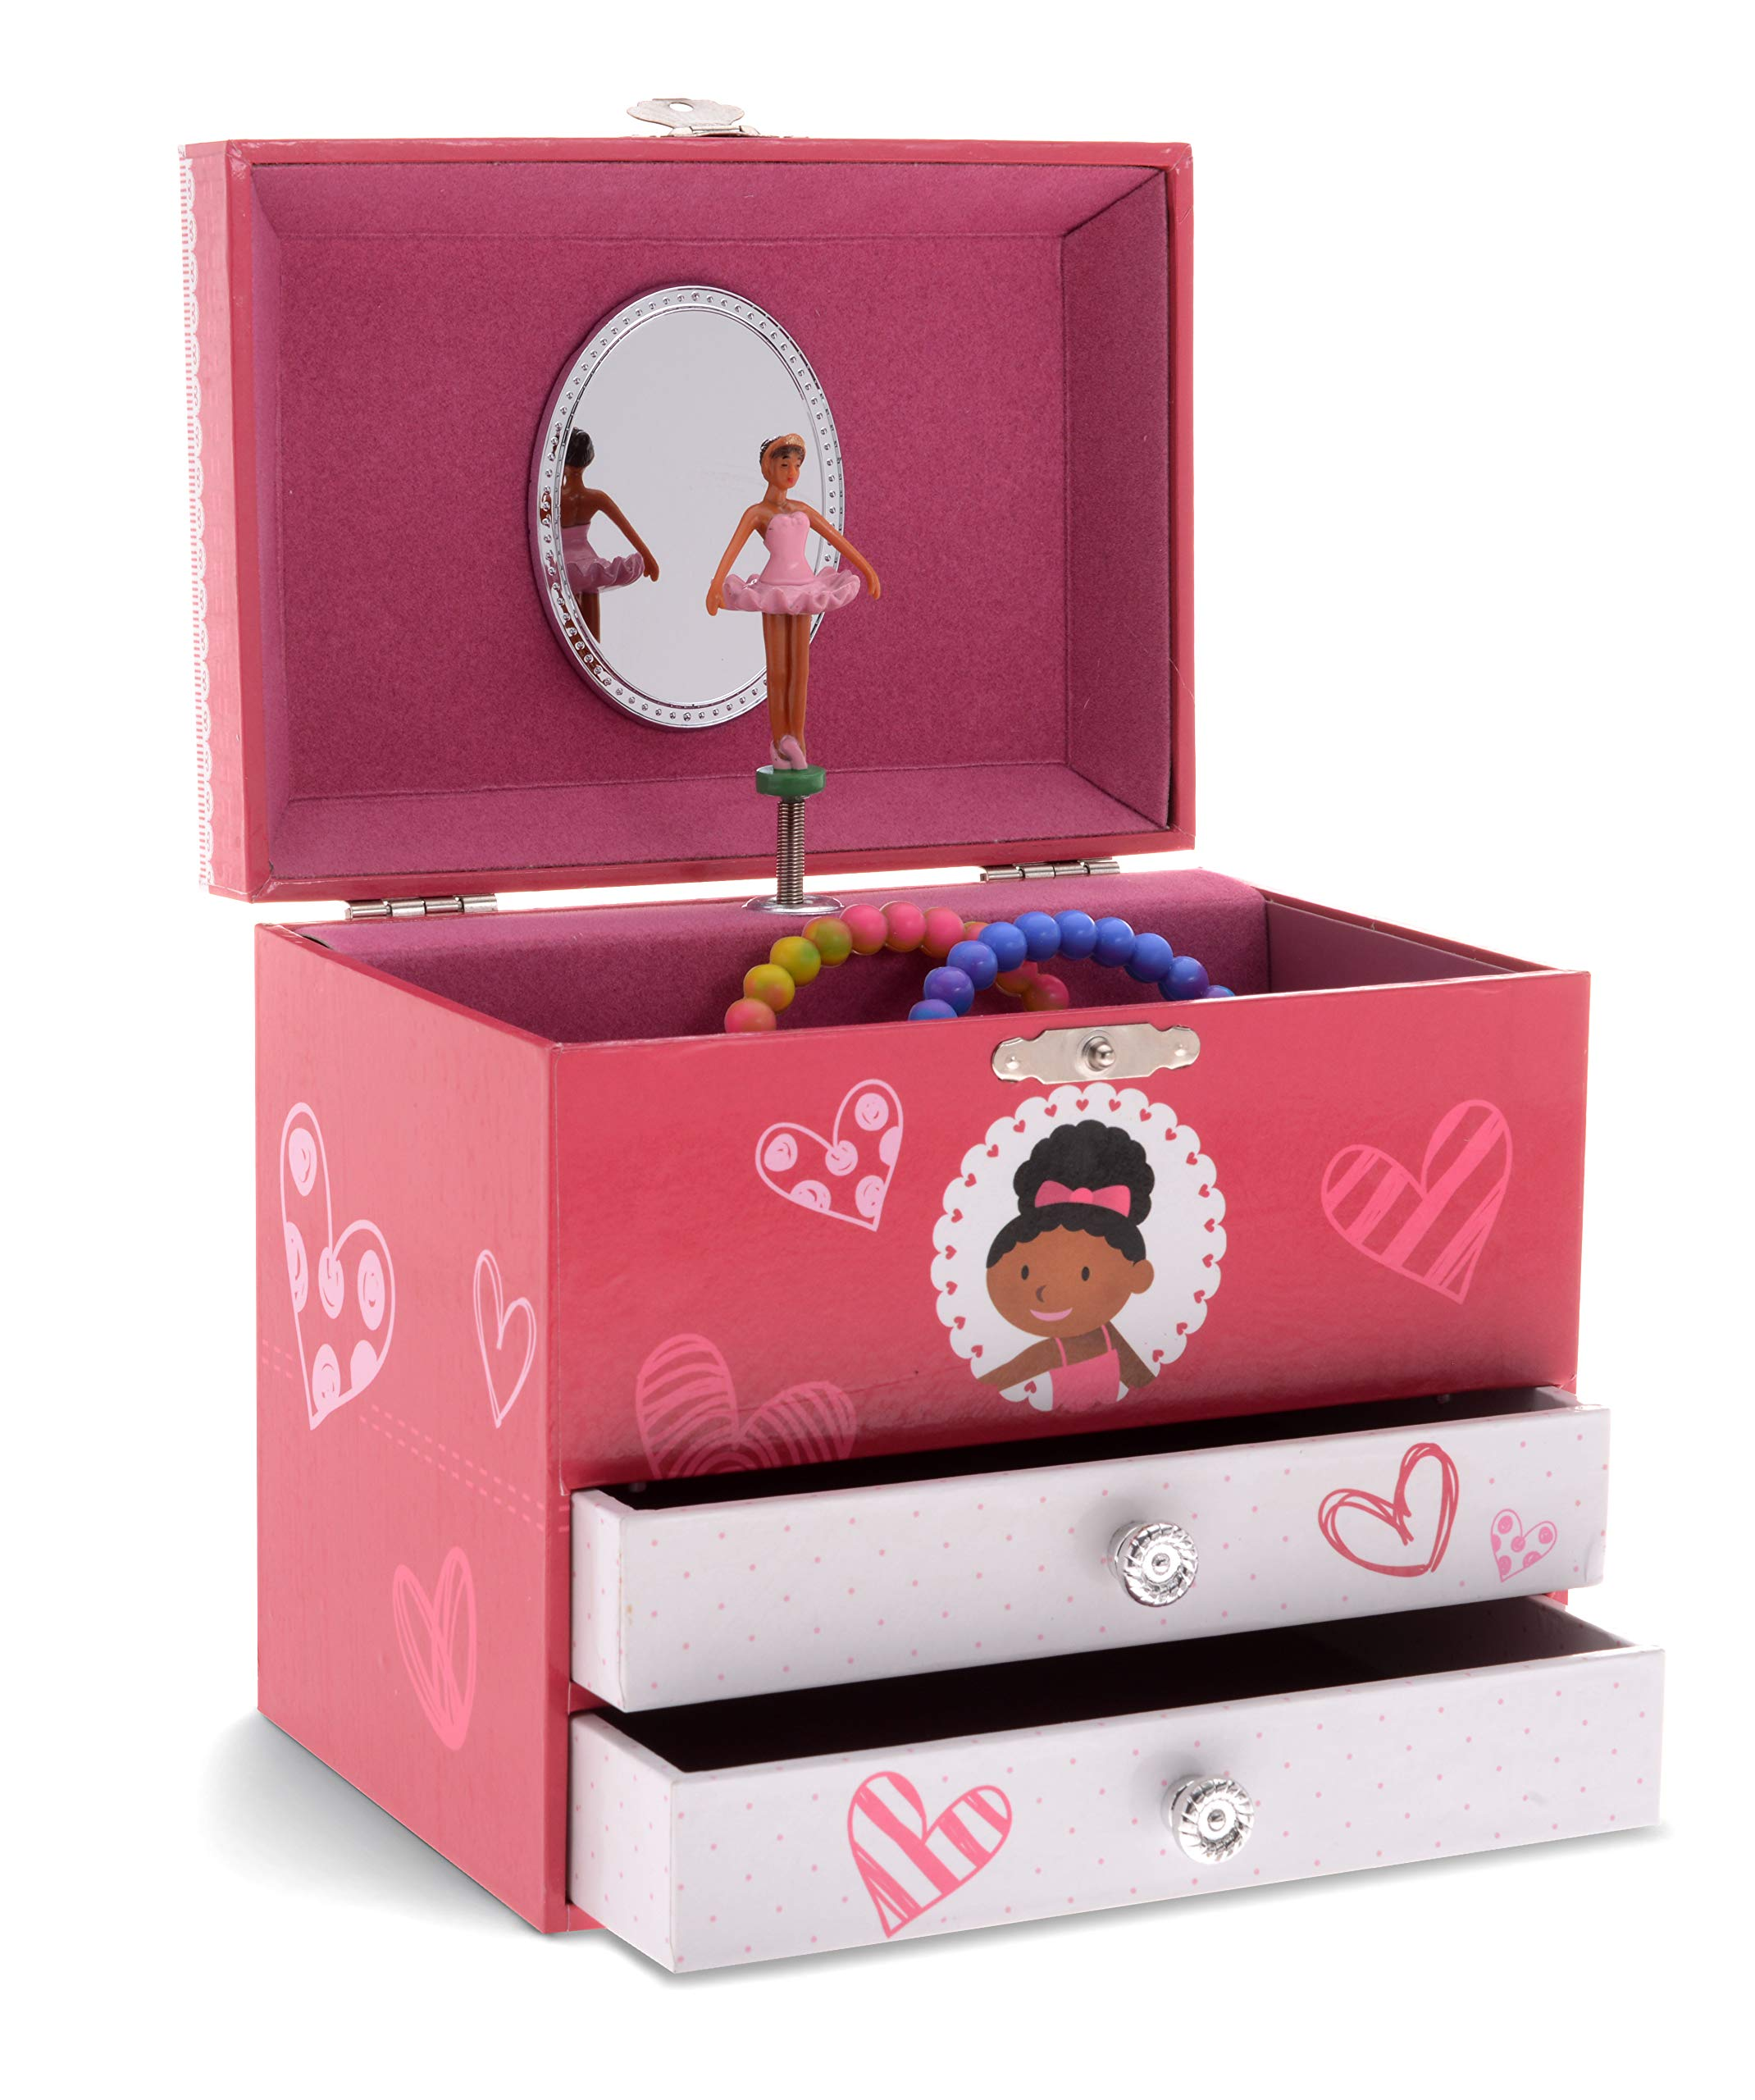 JewelKeeper Girl's Musical Ballerina Jewelry Storage Box with 2 Pullout Drawers, Pretty Hearts Design, Swan Lake Tune